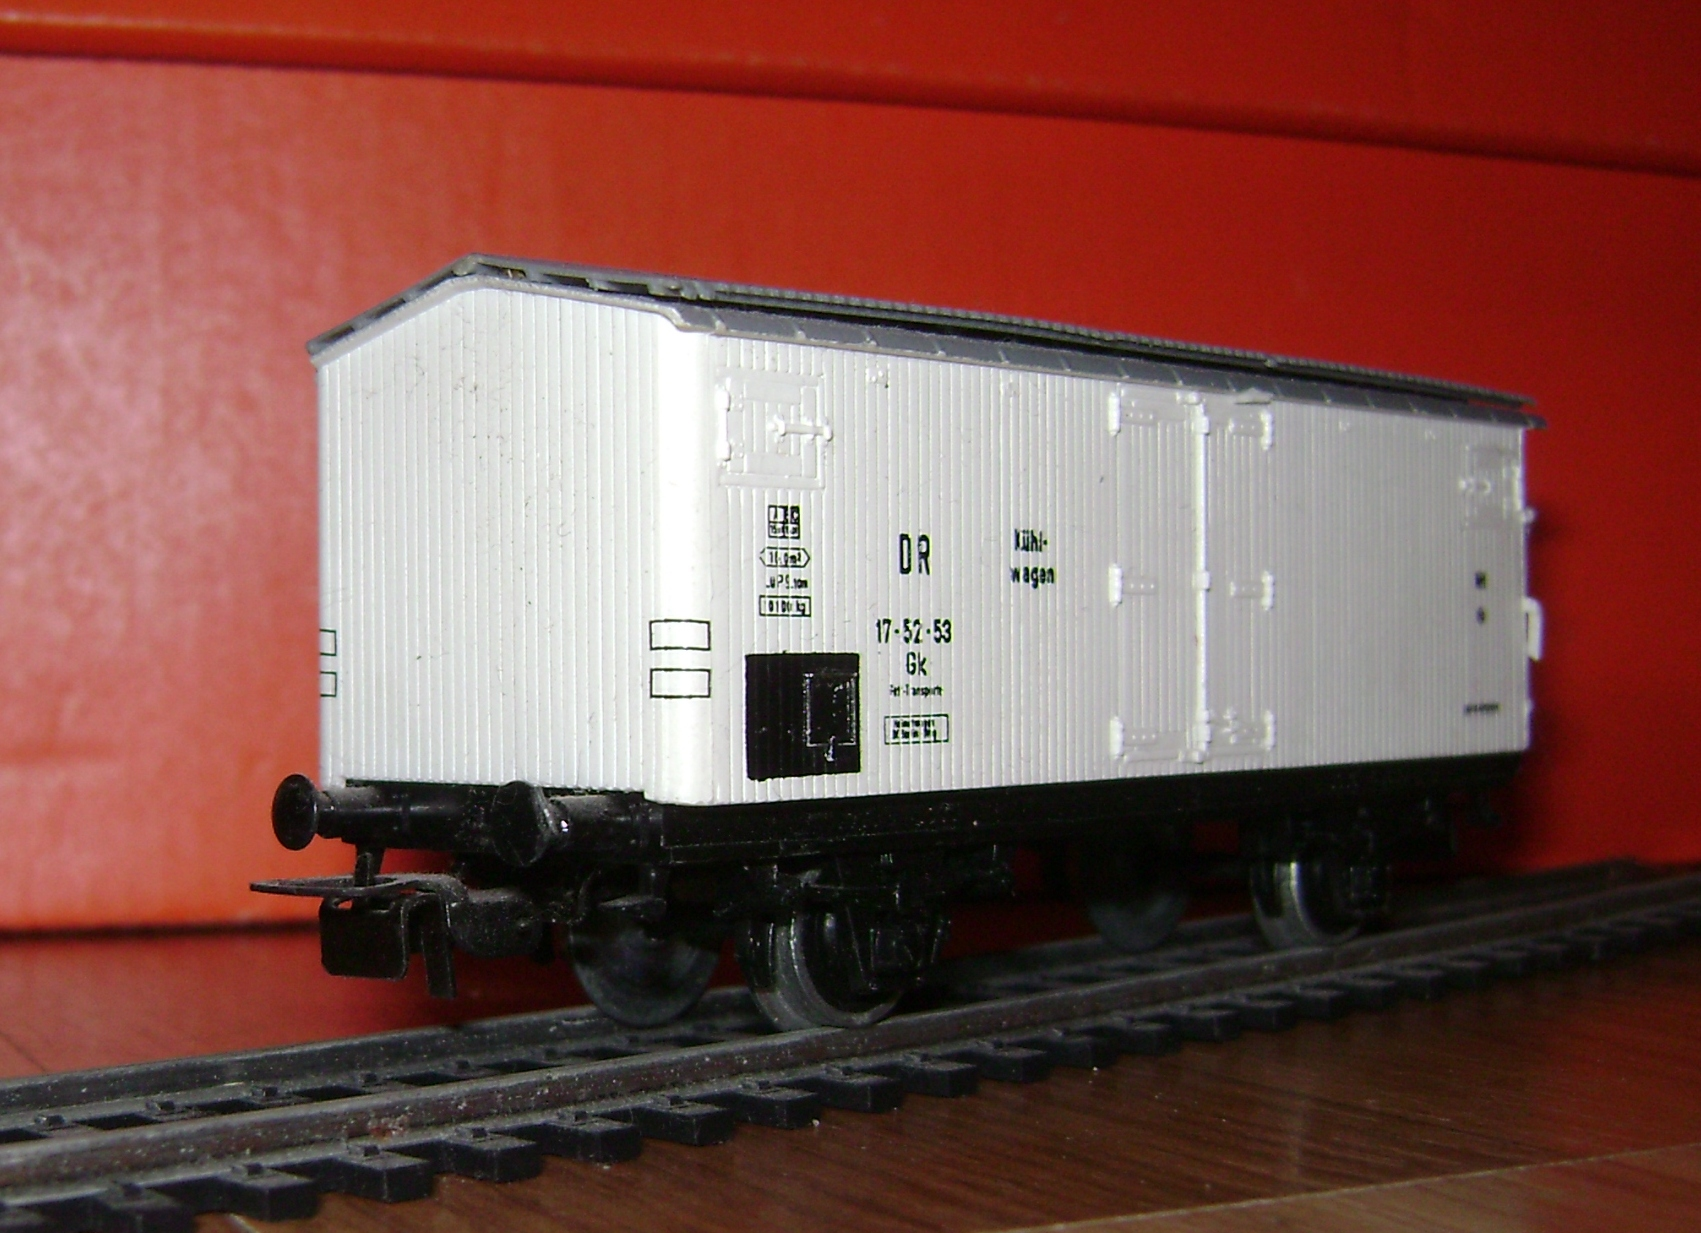 Despite Ces Hype Self Driving Cars Are Not For Sale: Rail Transport Modelling Scales Wikipedia The Free .html